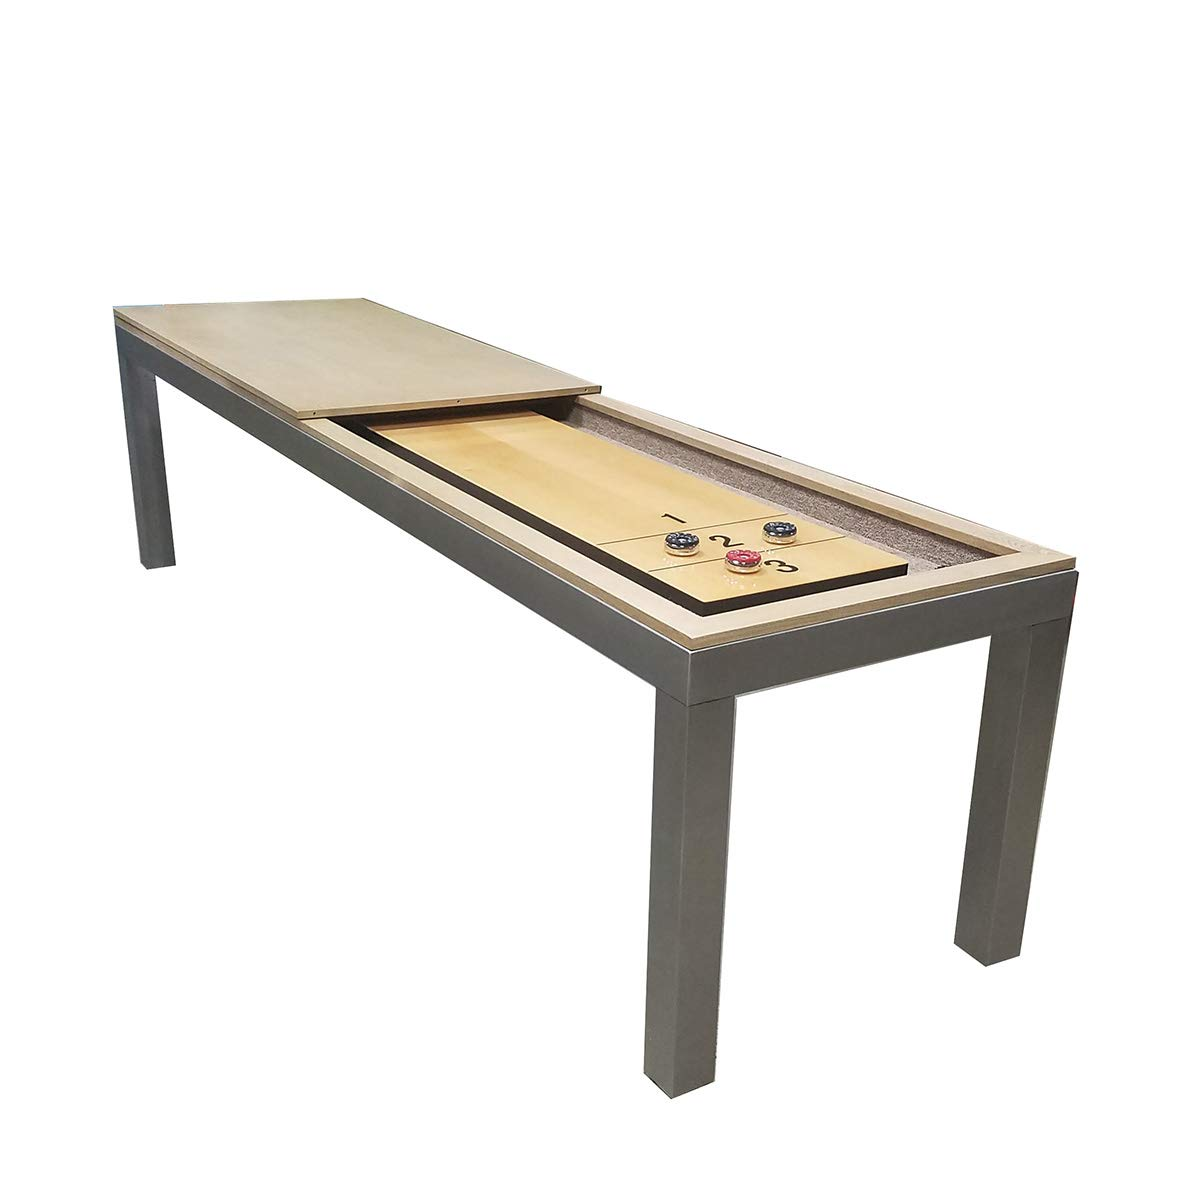 Game Room Guys 9' Stainless Shuffleboard with Dining Top by Game Room Guys